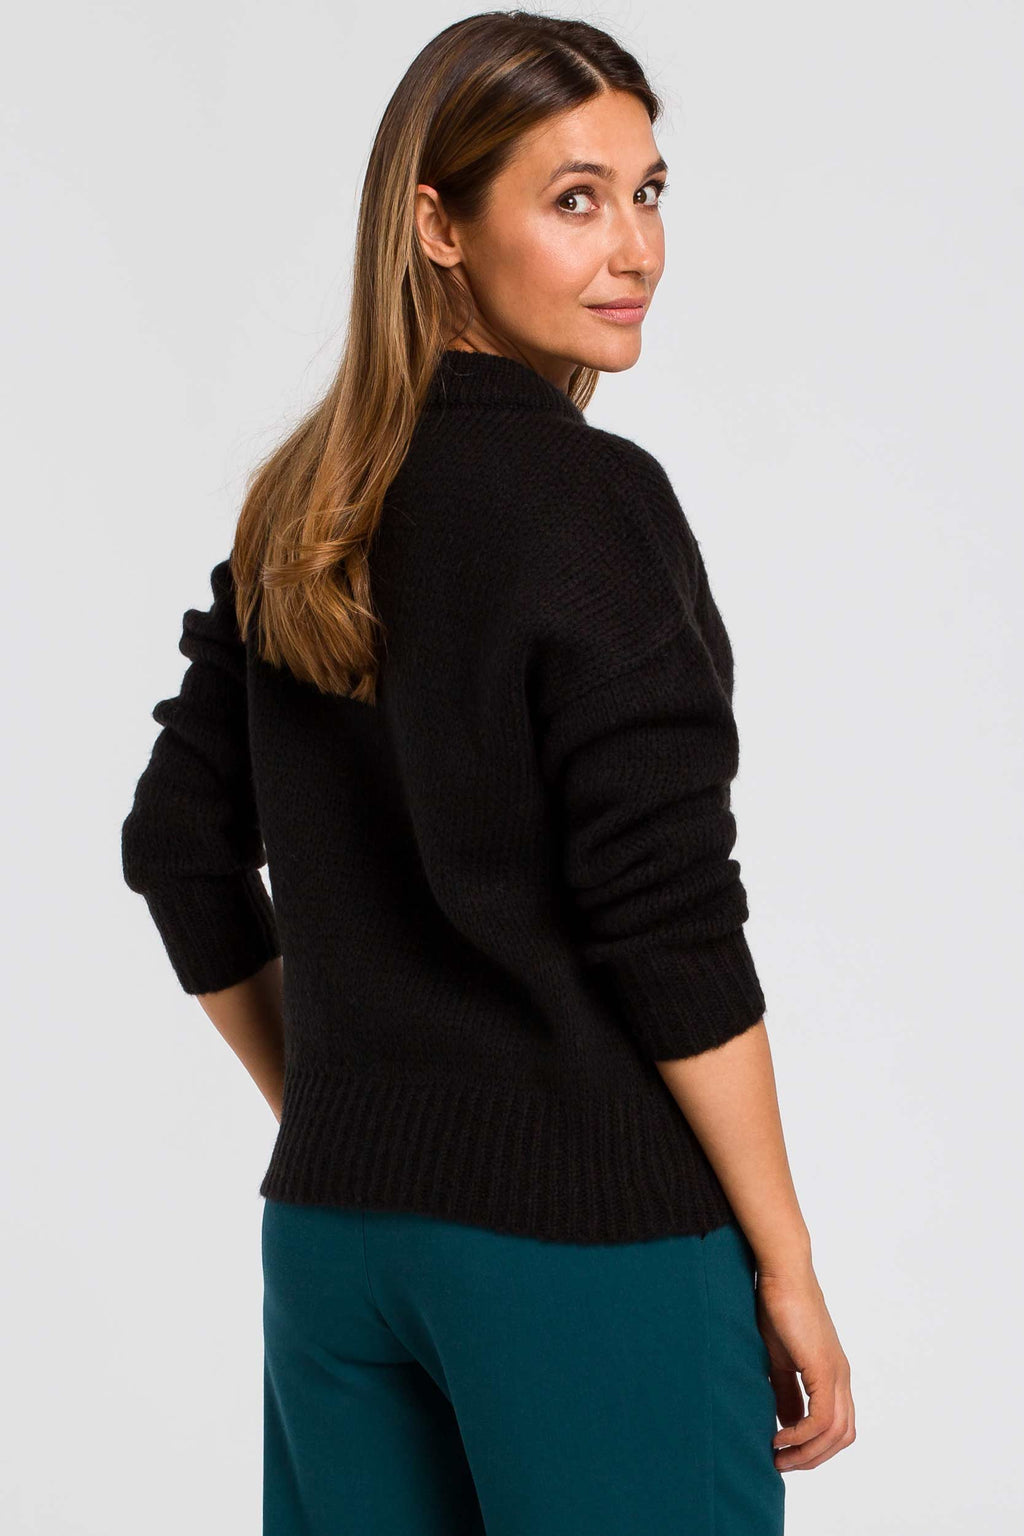 Black Lightweight Sweater - So Chic Boutique